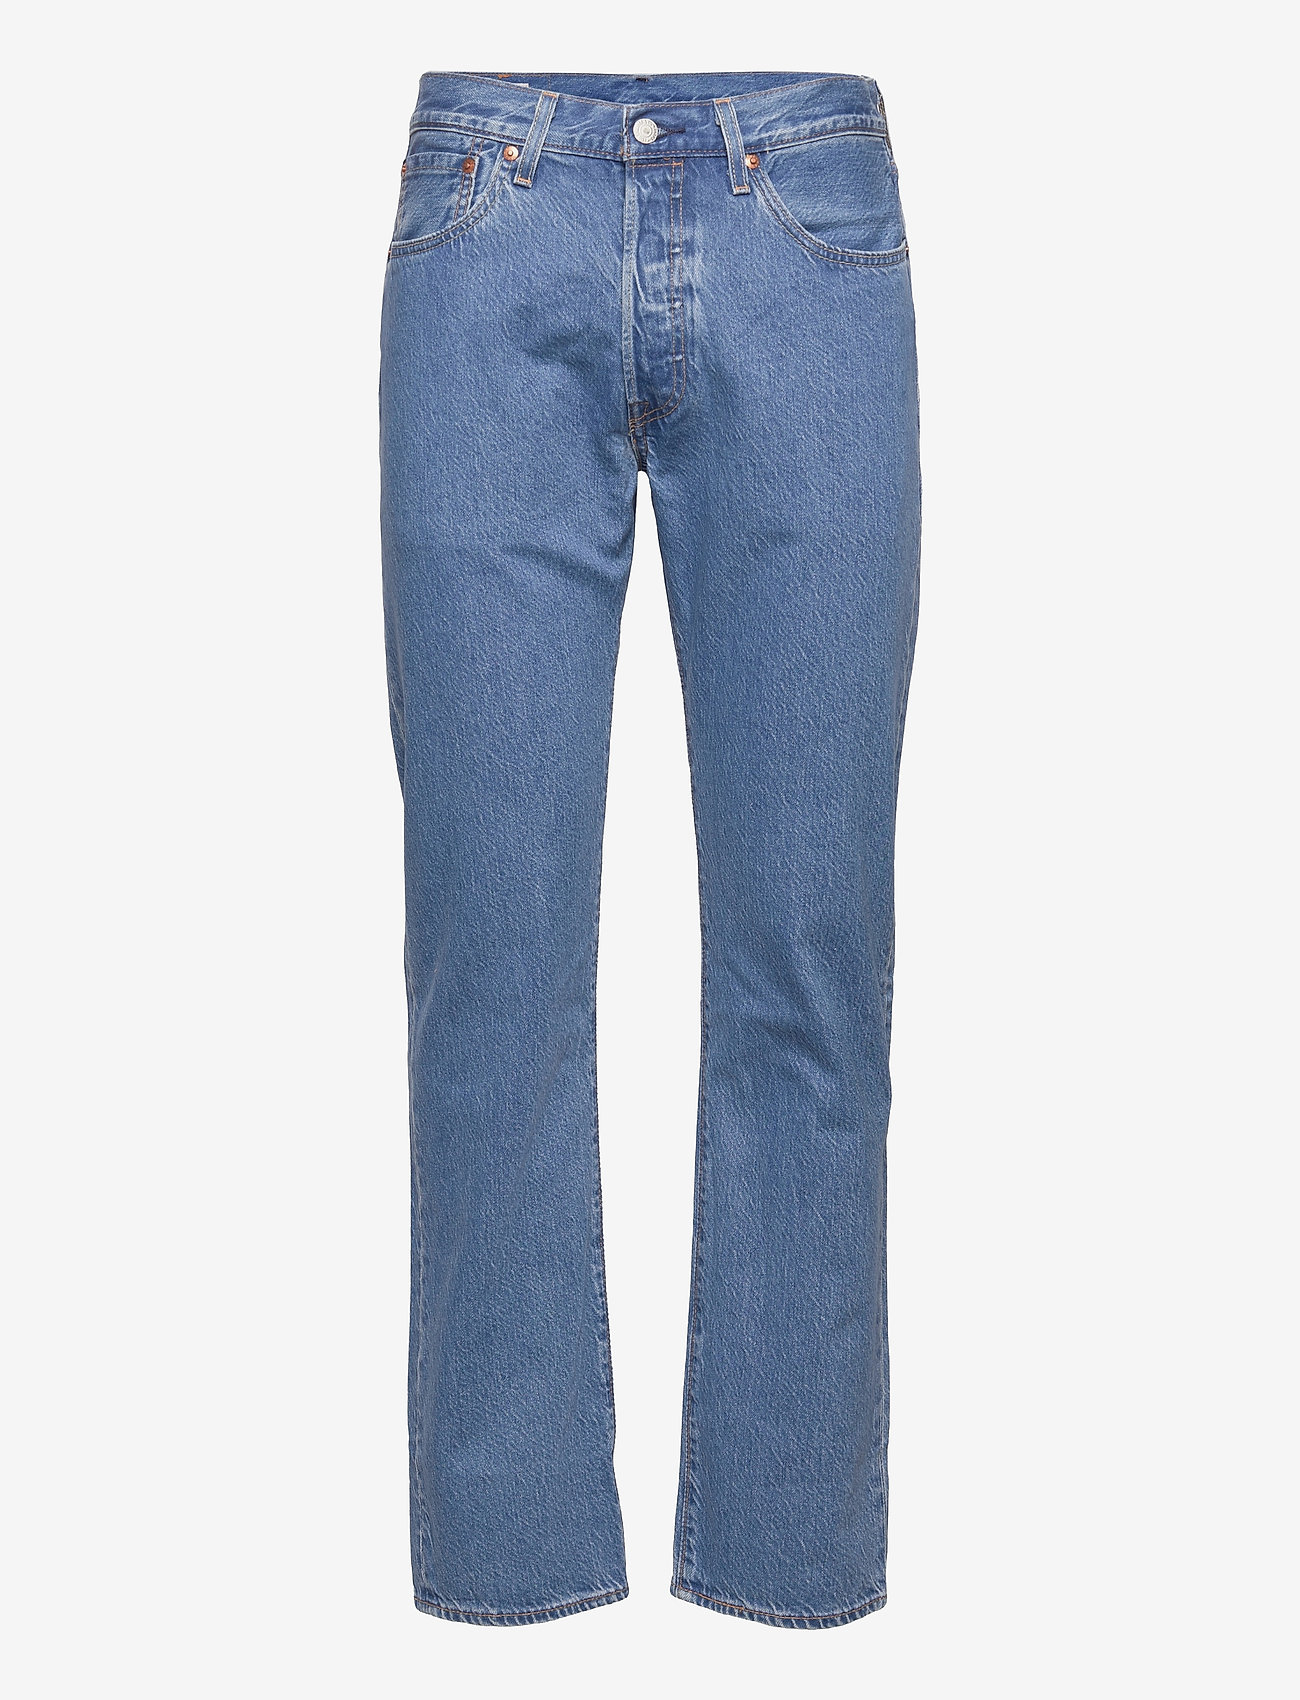 LEVI´S Men - 501 LEVISORIGINAL CANYON LIGHT - relaxed jeans - light indigo - flat finis - 0